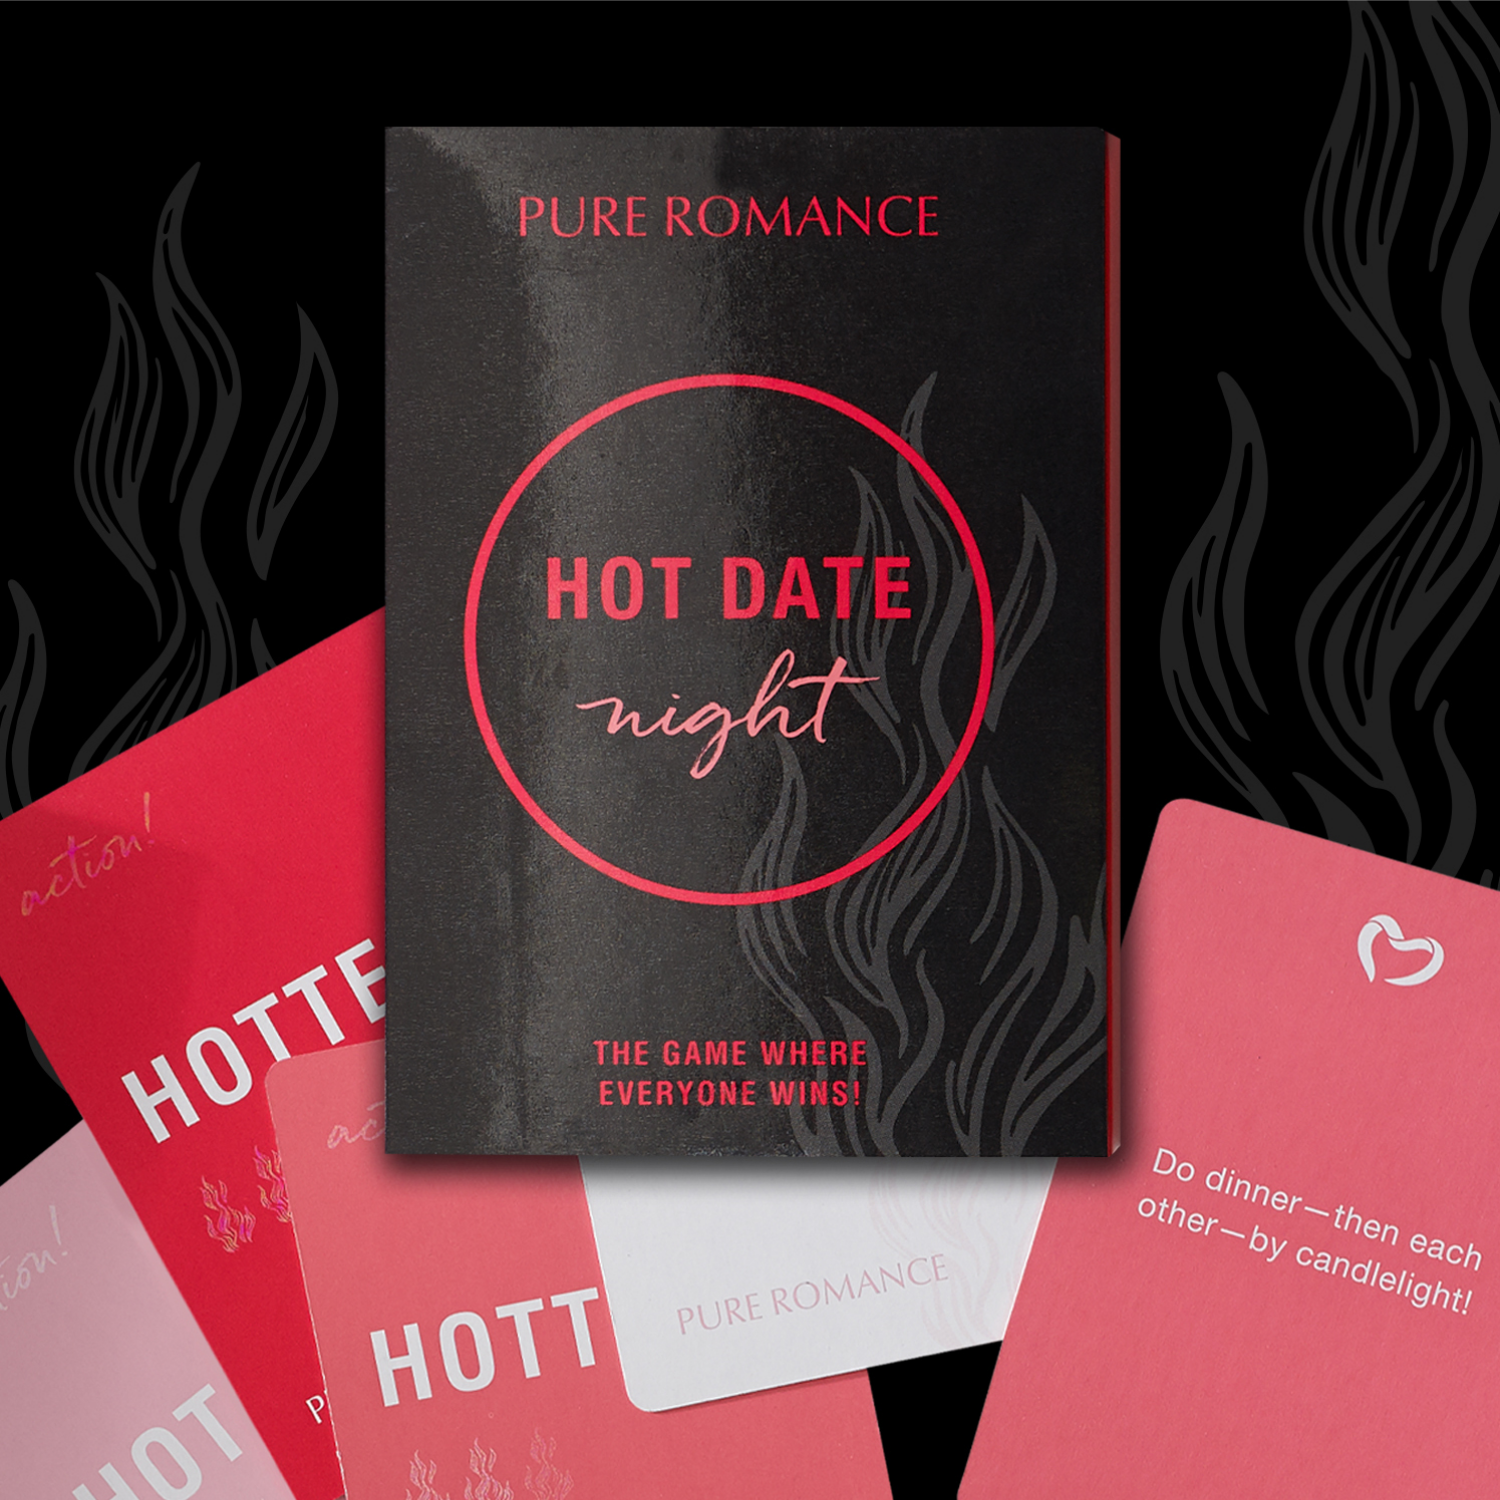 Hot Date Night in 2020 Pure romance, Date night games